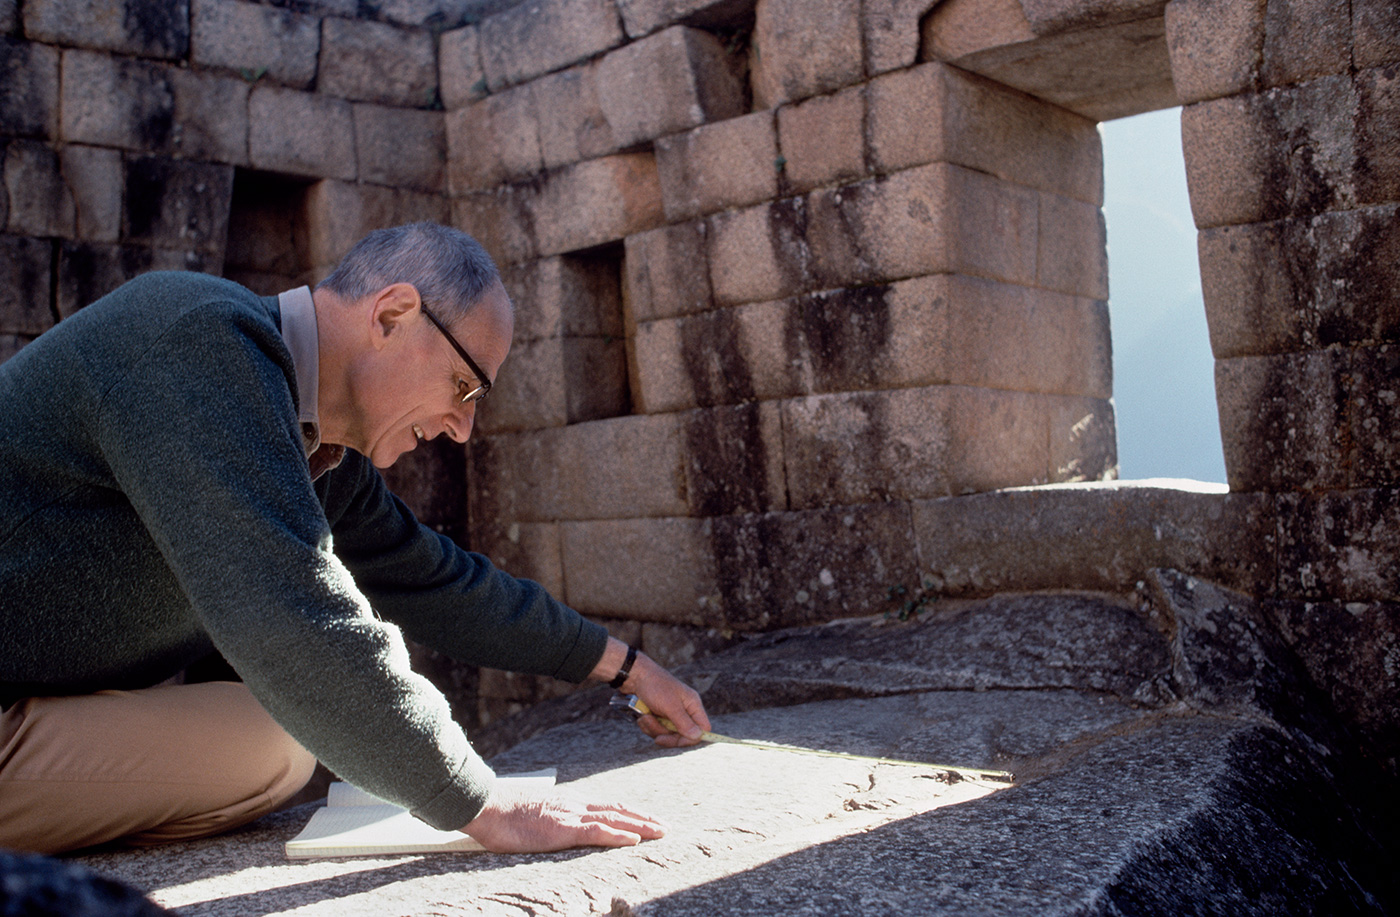 John Rowe, archaeologist, measures the sun's alignment through a temple window during the June solstice at Machu Picchu.